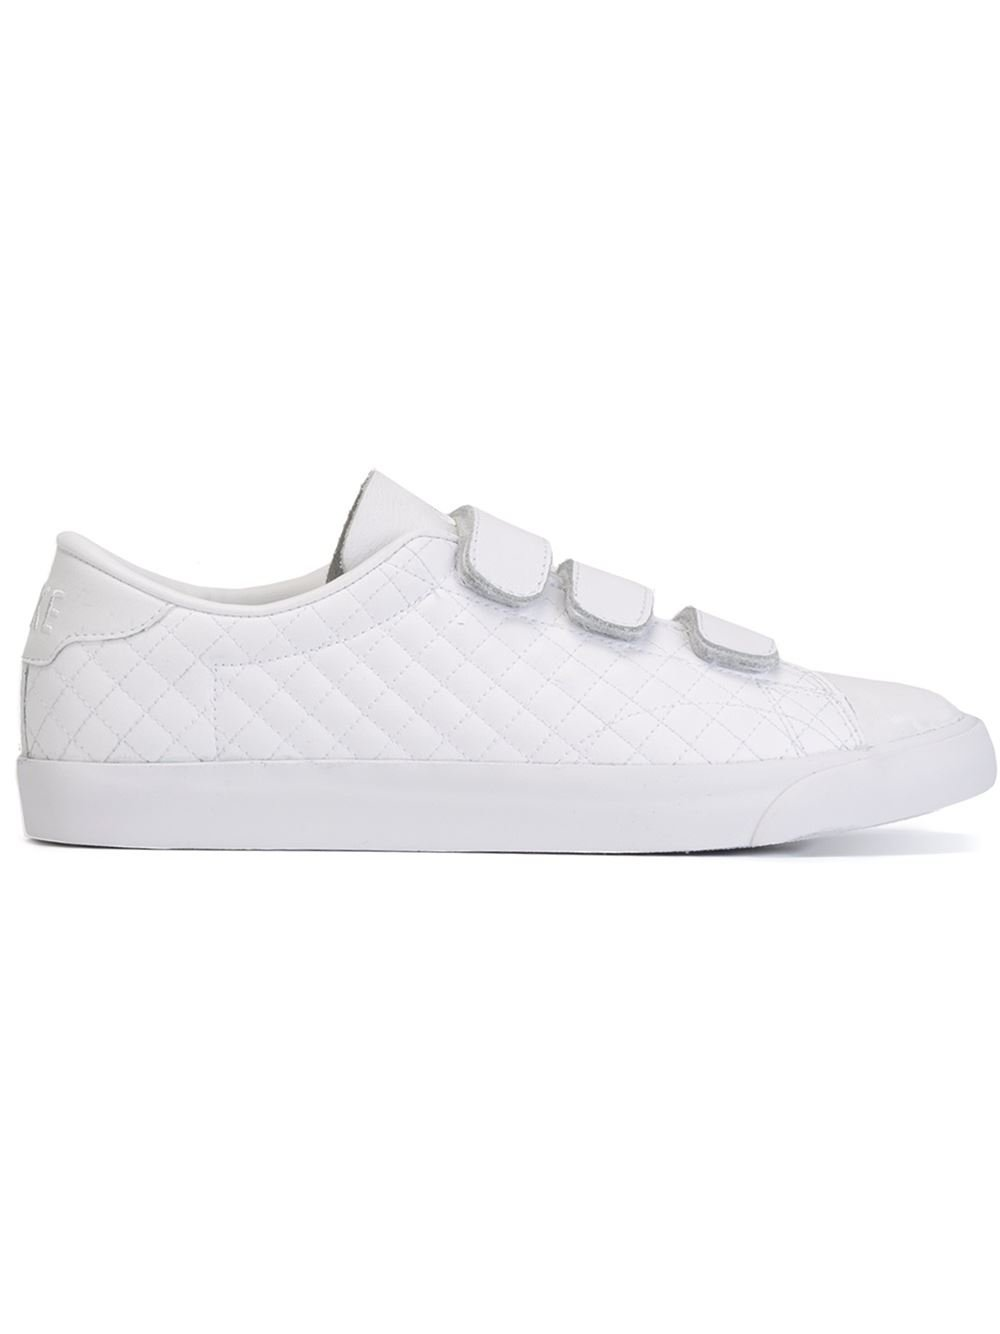 Lyst - Nike Tennis Classic AC V Low-Top Sneakers in White for Men cfdfc9f4c163